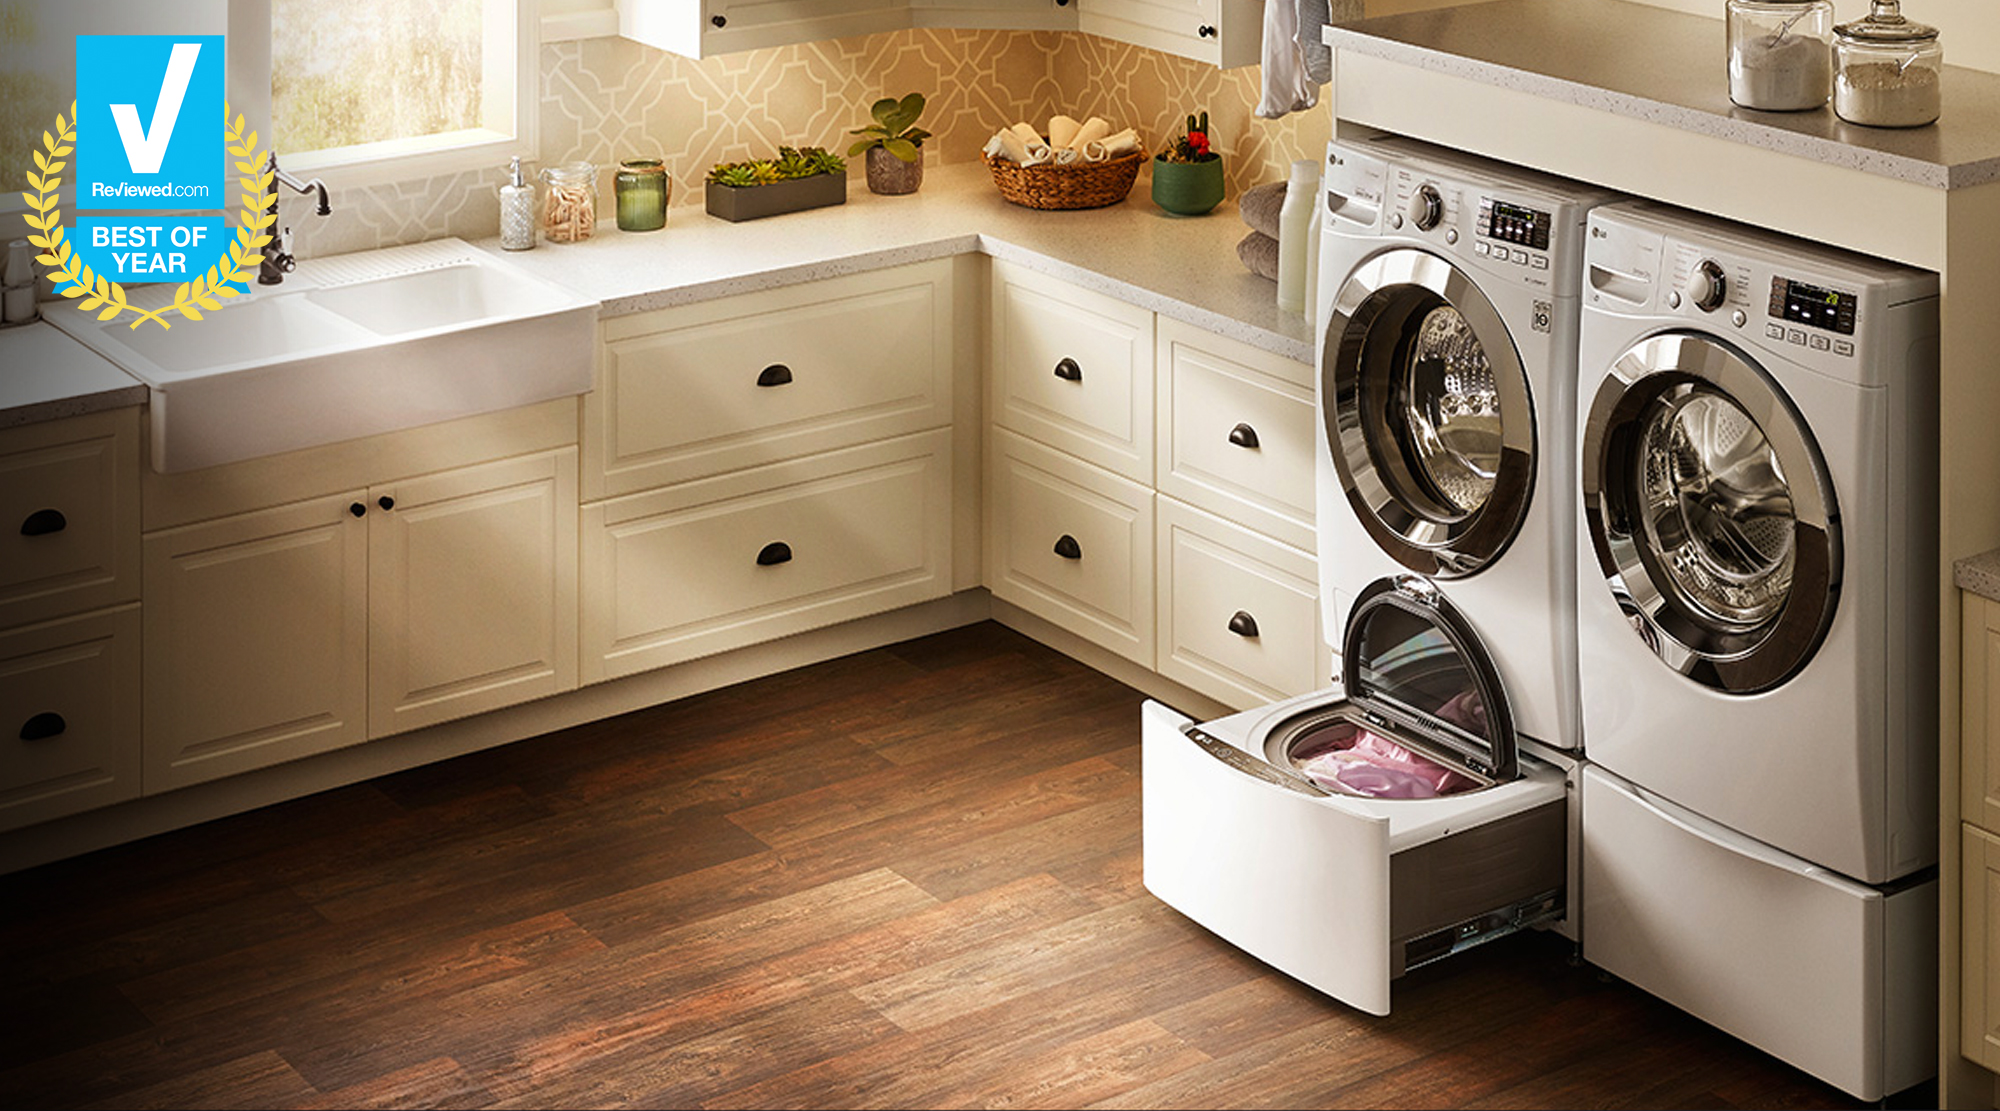 Best Washing Machines And Dryers Of 2016 Reviewed Com